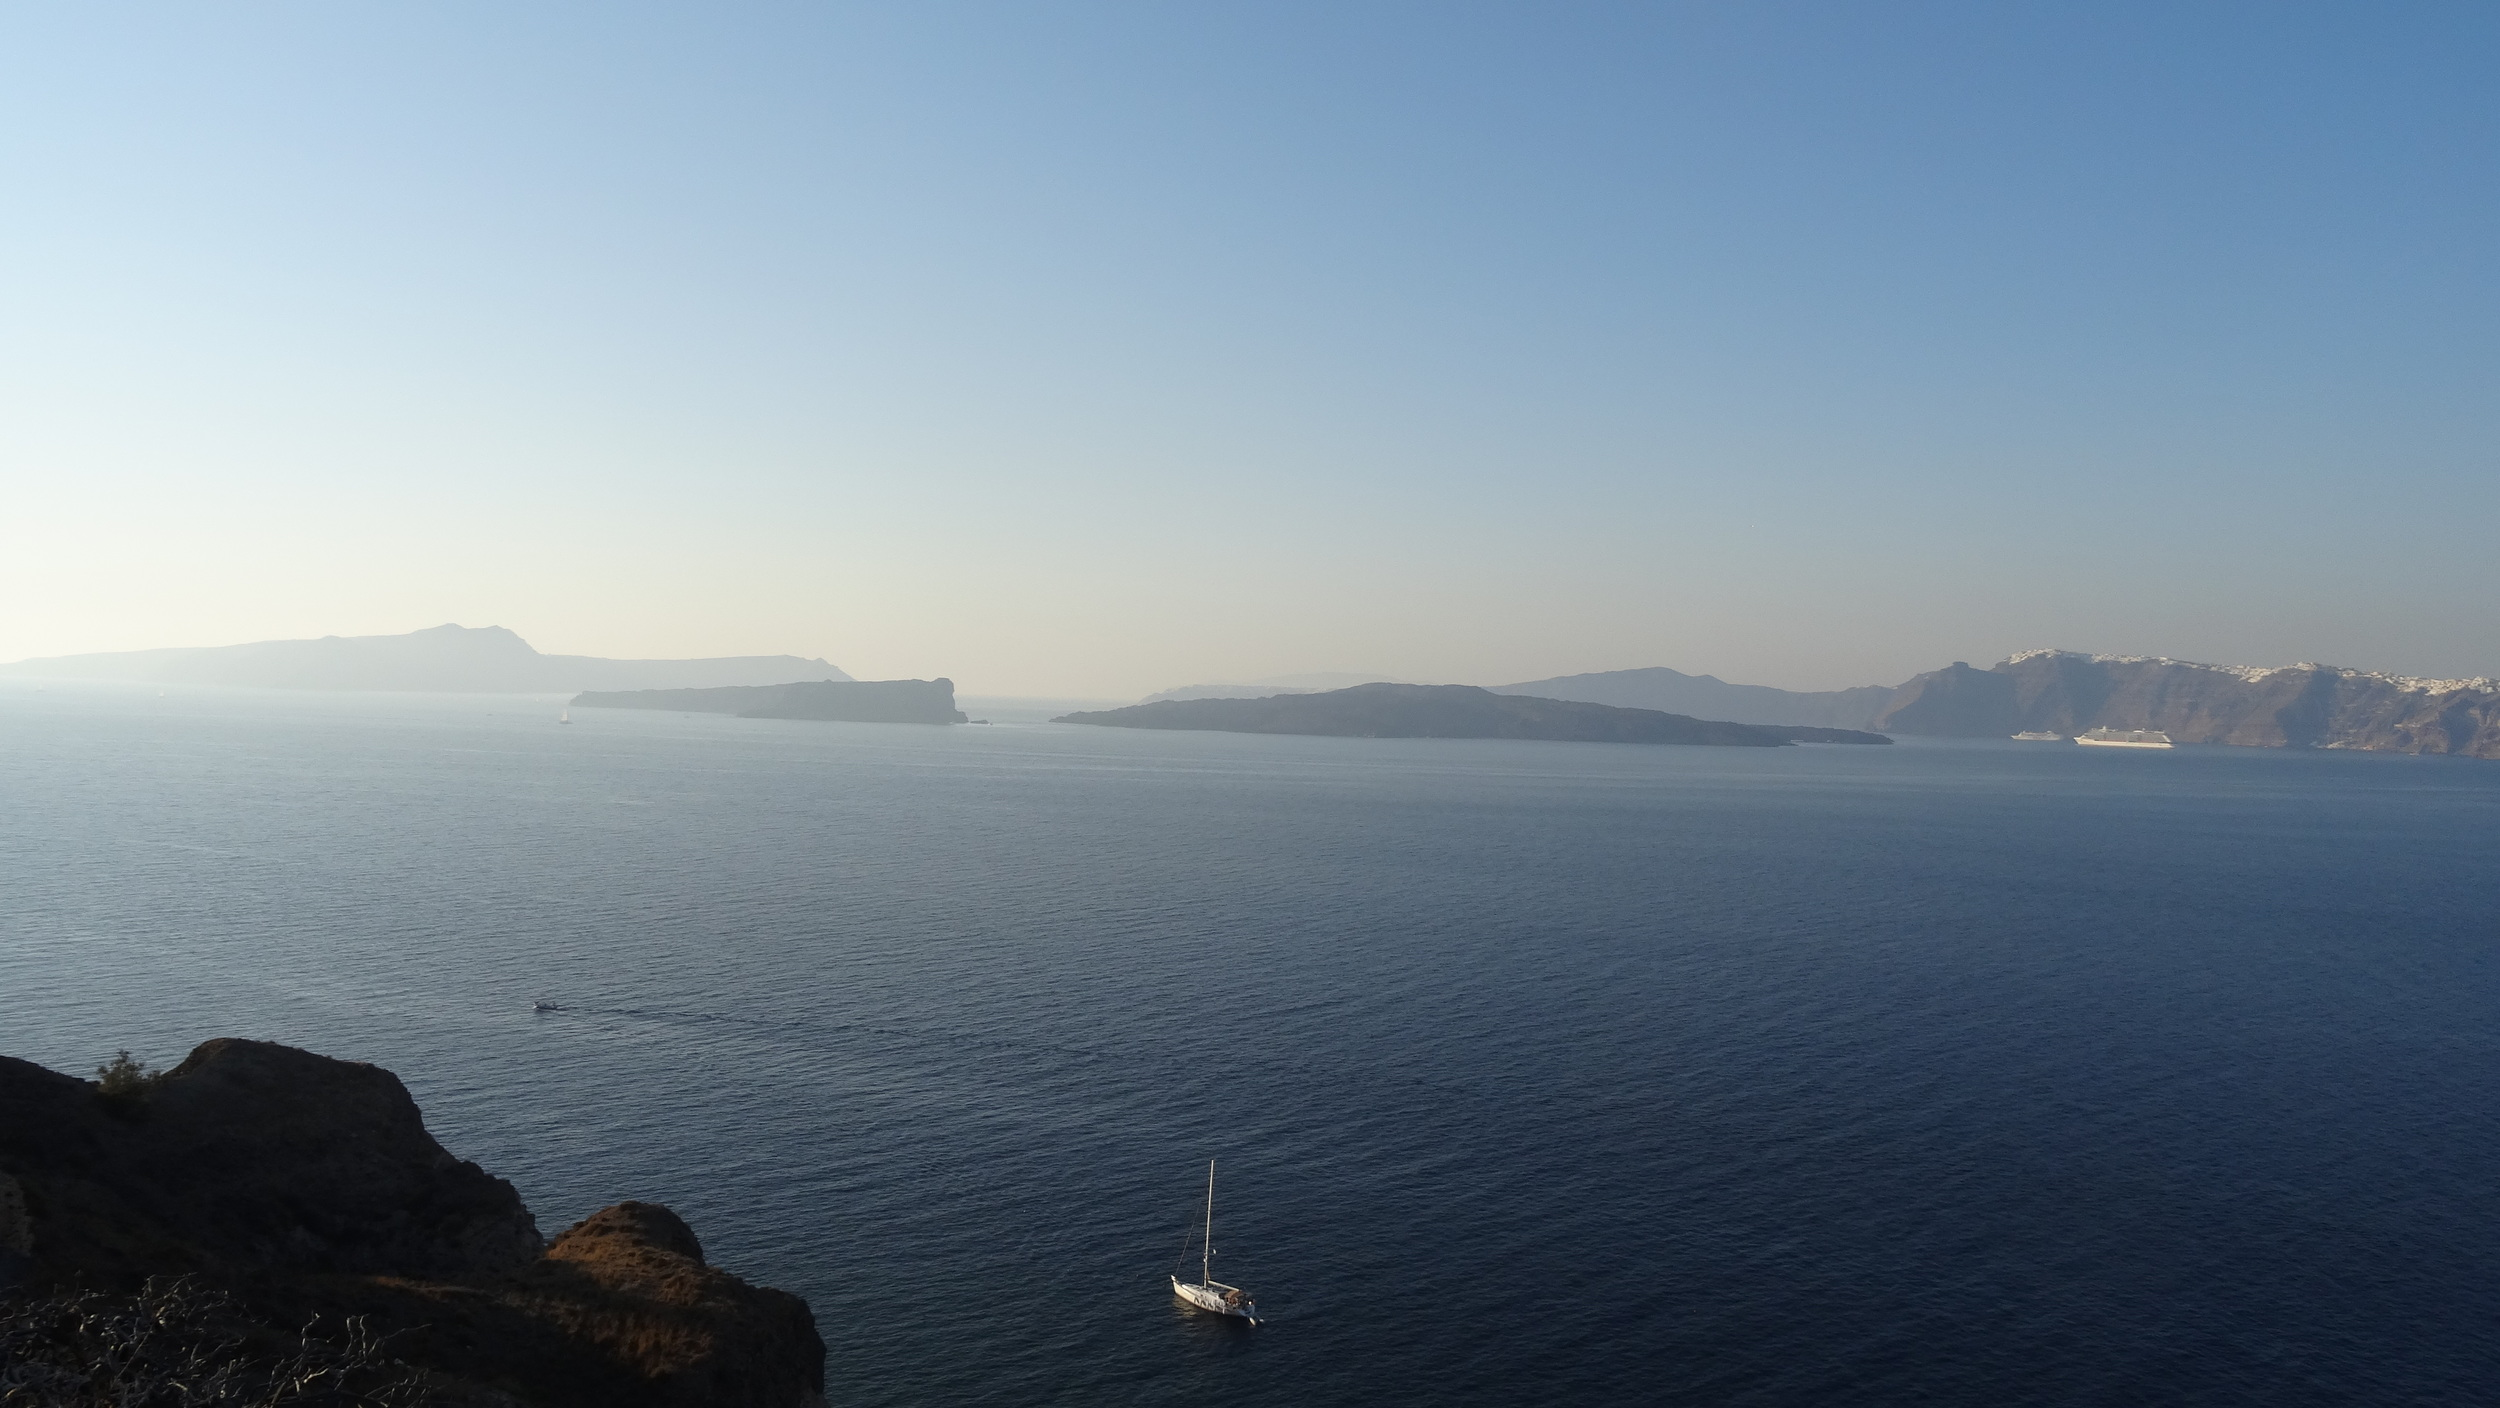 The Aegean sea. As I gazed over its grandeur, you could see how the rulers of the Greek, Ottoman, and Roman empires might have felt.